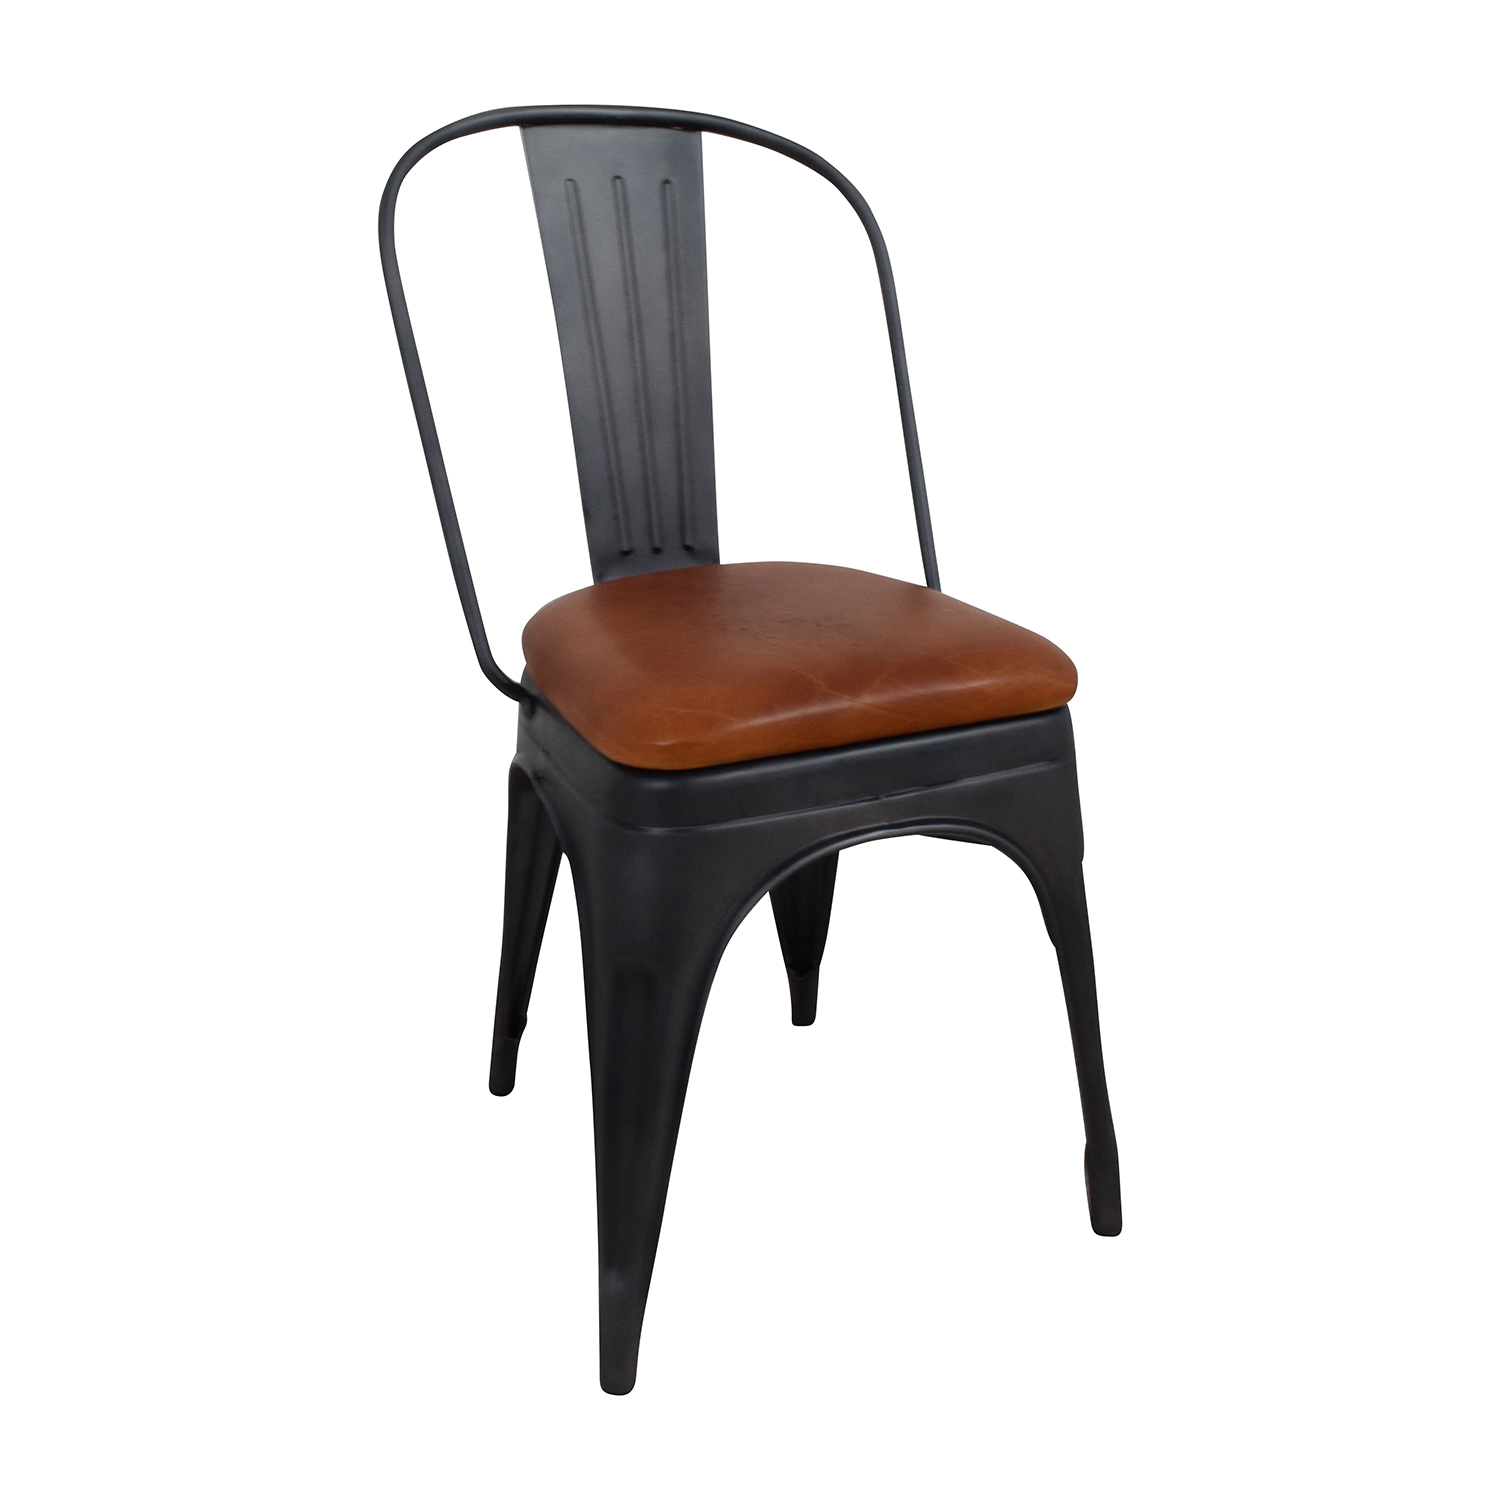 50 OFF  Modern Steel Desk Chair with Brown Leather Seat